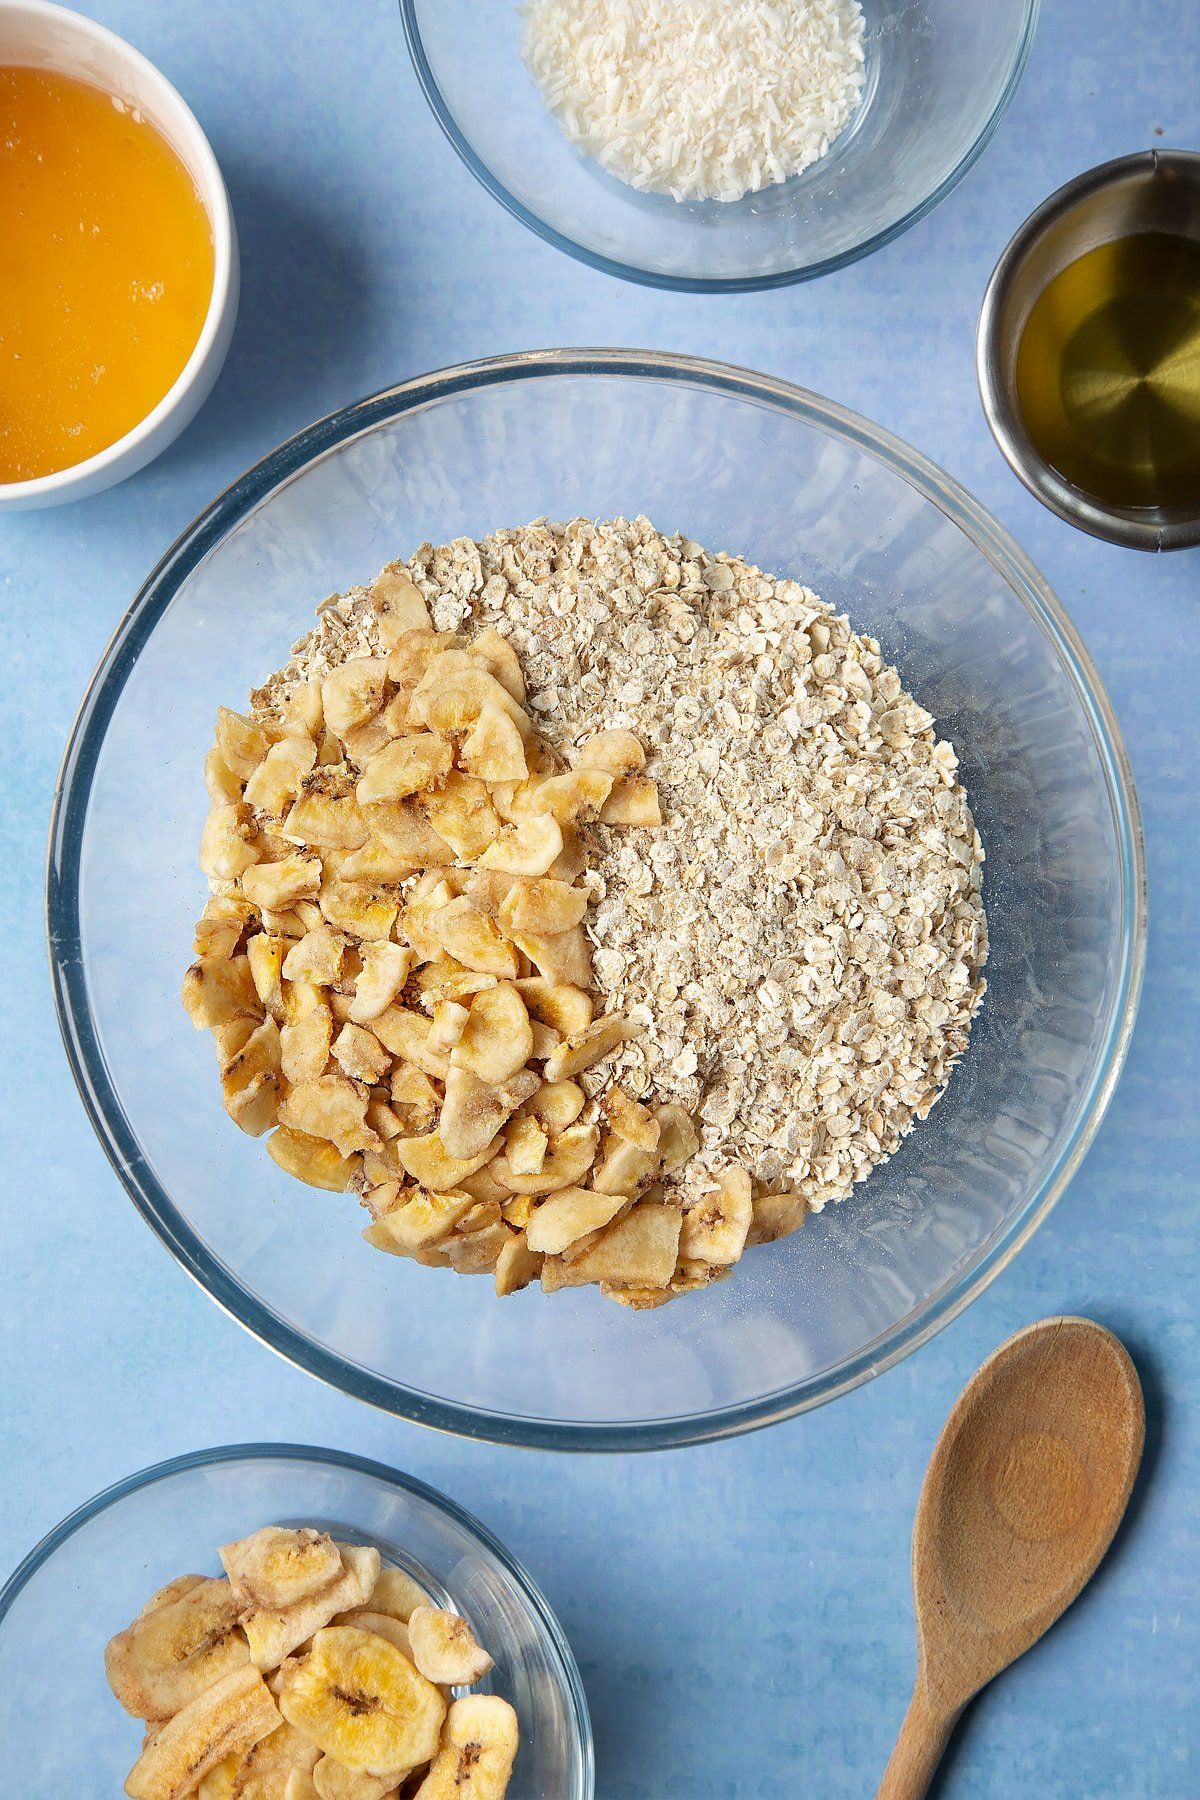 A large glass mixing bowl containing rolled oats and dried banana chips. Ingredients to make a banana coconut granola recipe surround the bowl.